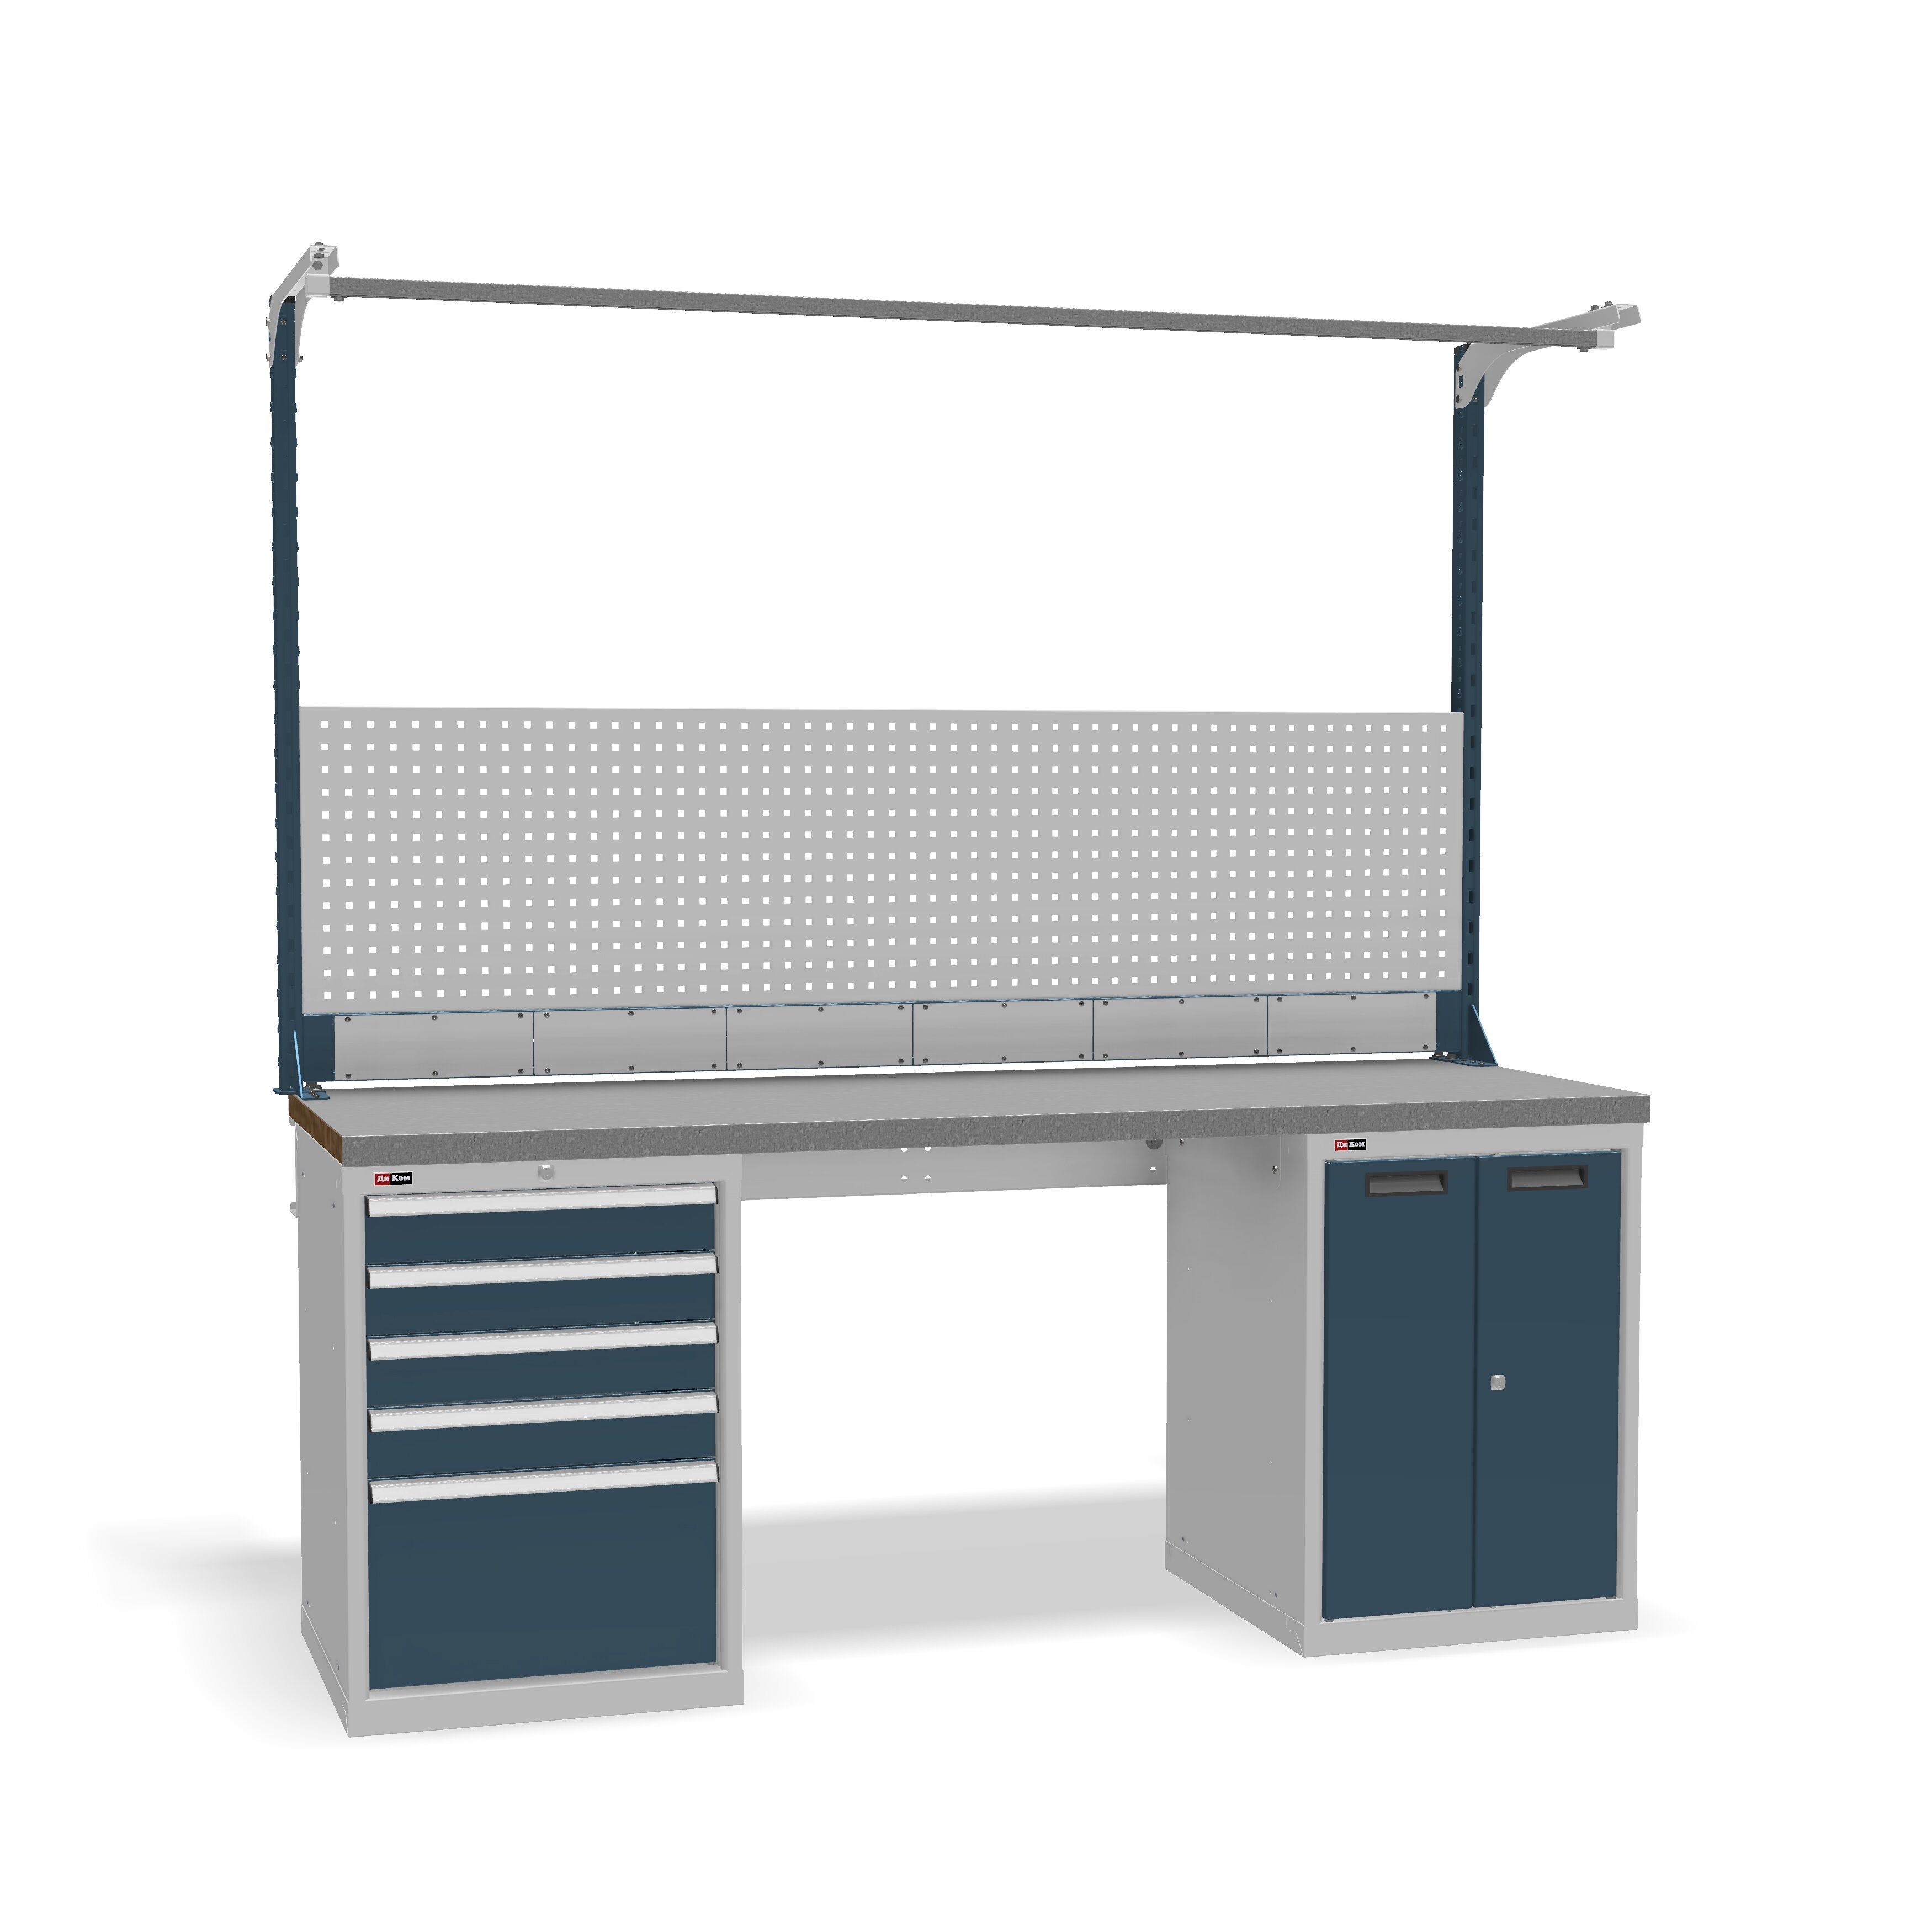 DiKom VS-200-07 Workbench + DiKom Perforated Panel VS-200-E5